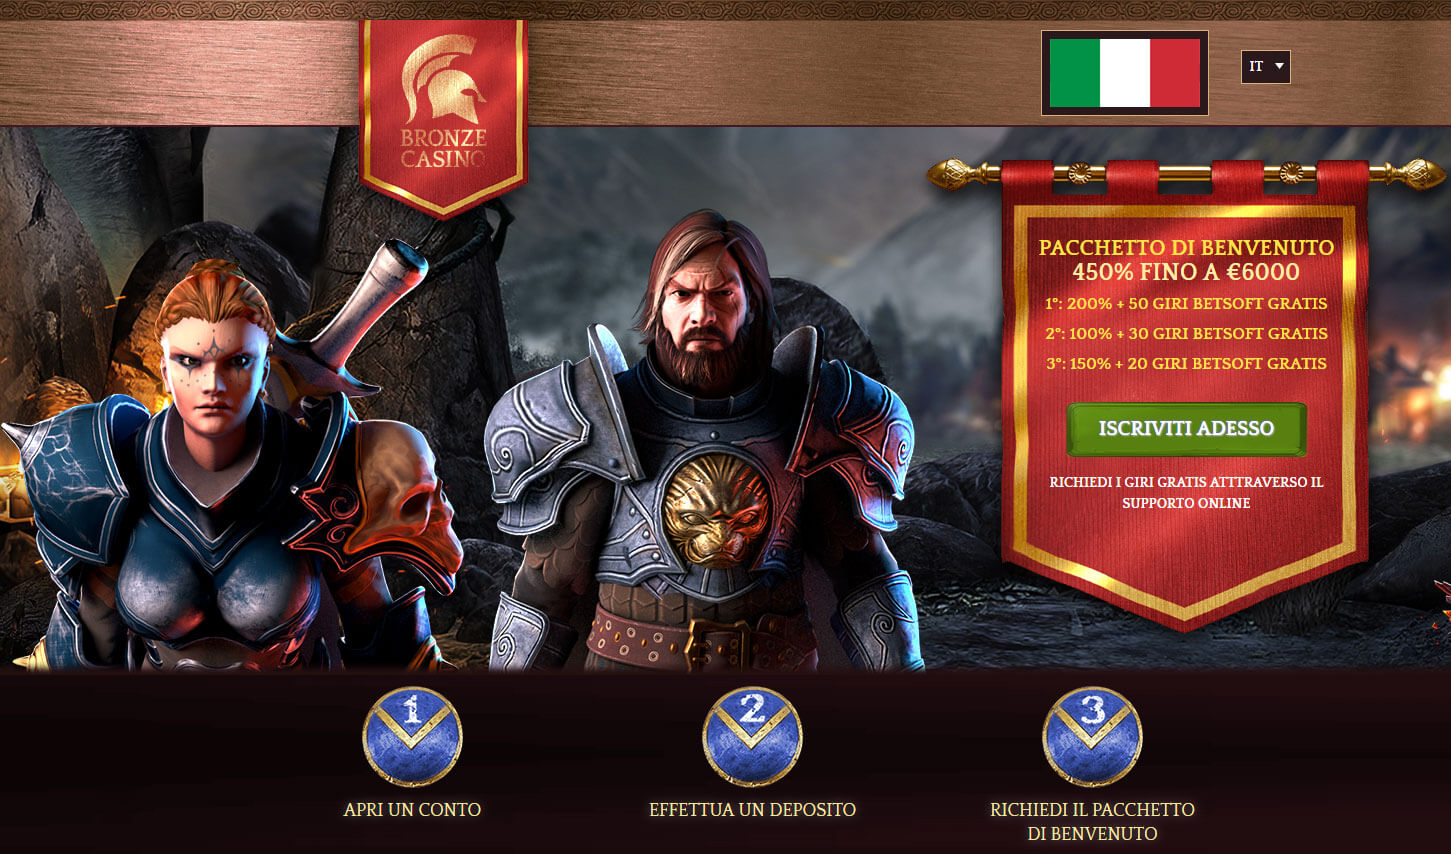 Bronze Casinò Screenshot